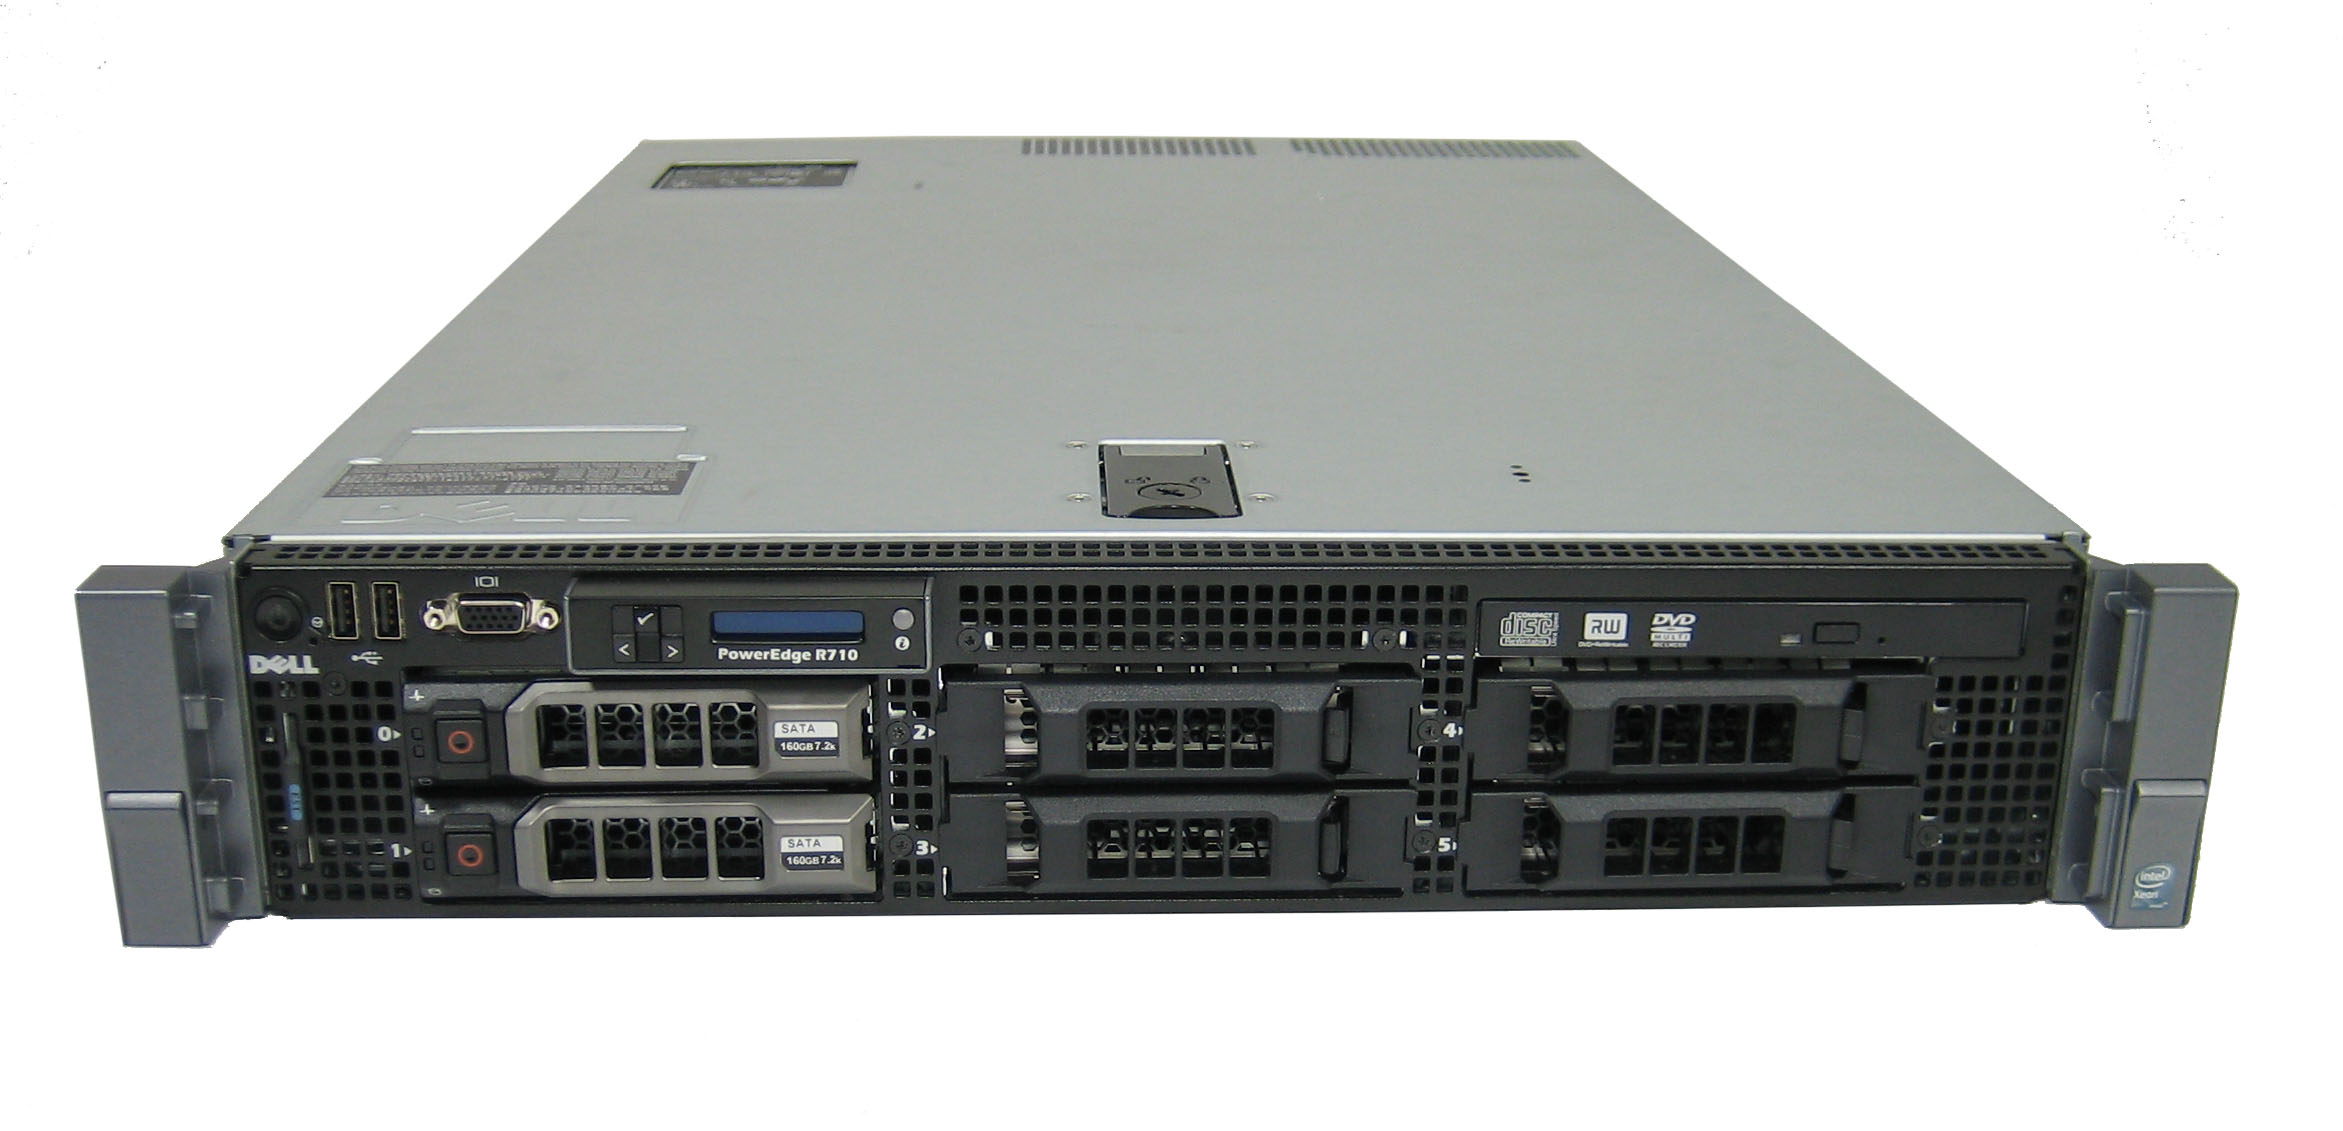 SERVER DELL POWEREDGE R710, 6 CORE PROCESSOR E5645 2.4GHZ 12MB CACHE